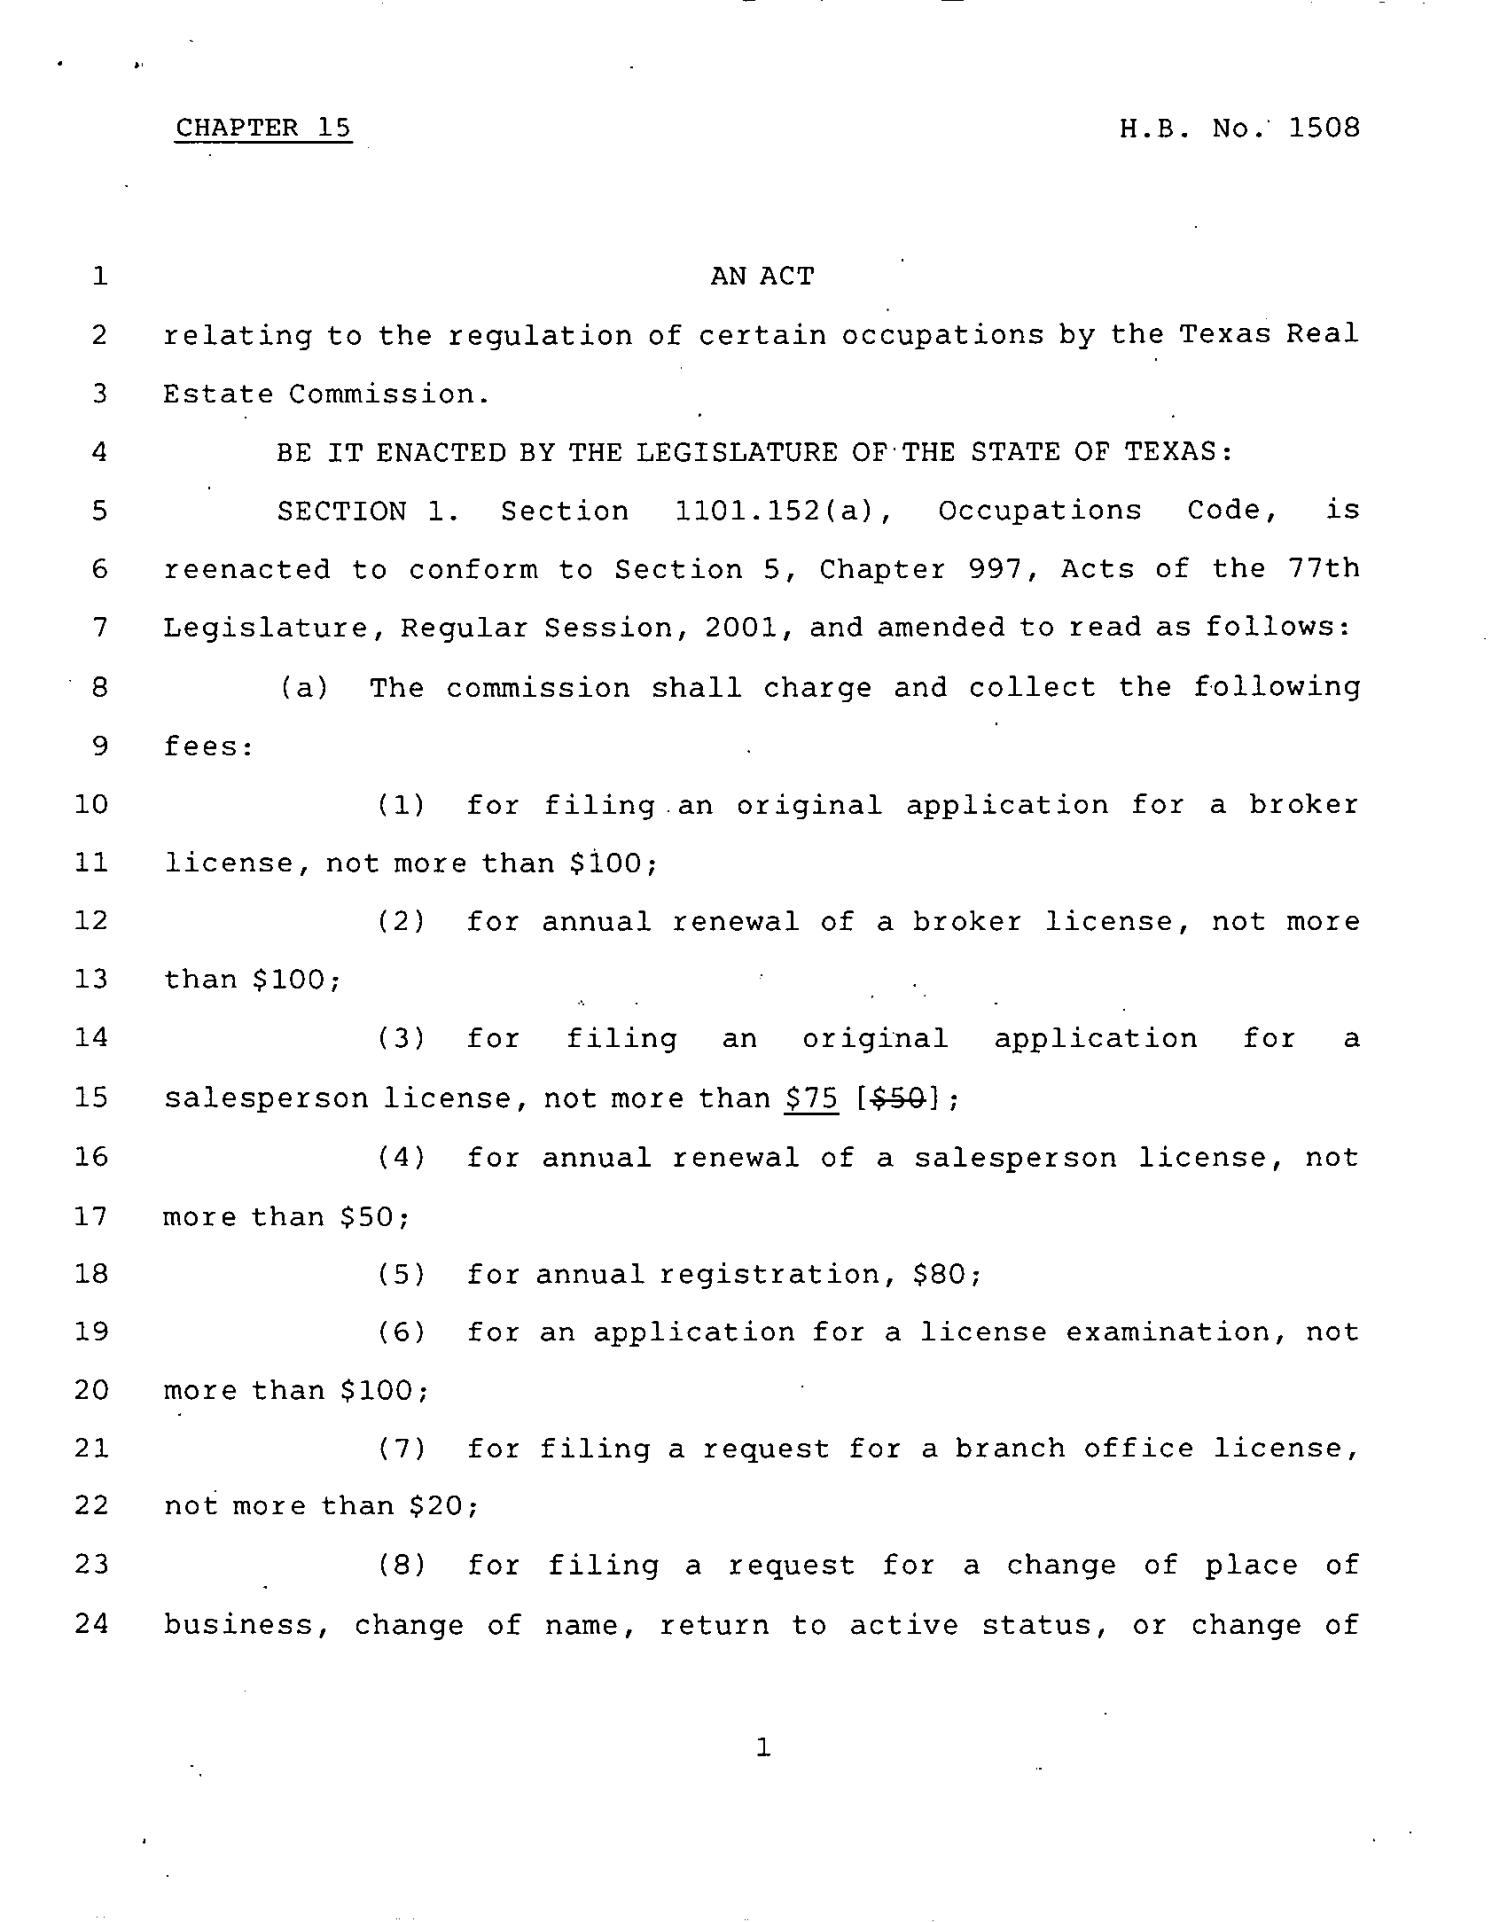 78th Texas Legislature, Regular Session, House Bill 1508, Chapter 15                                                                                                      [Sequence #]: 1 of 10